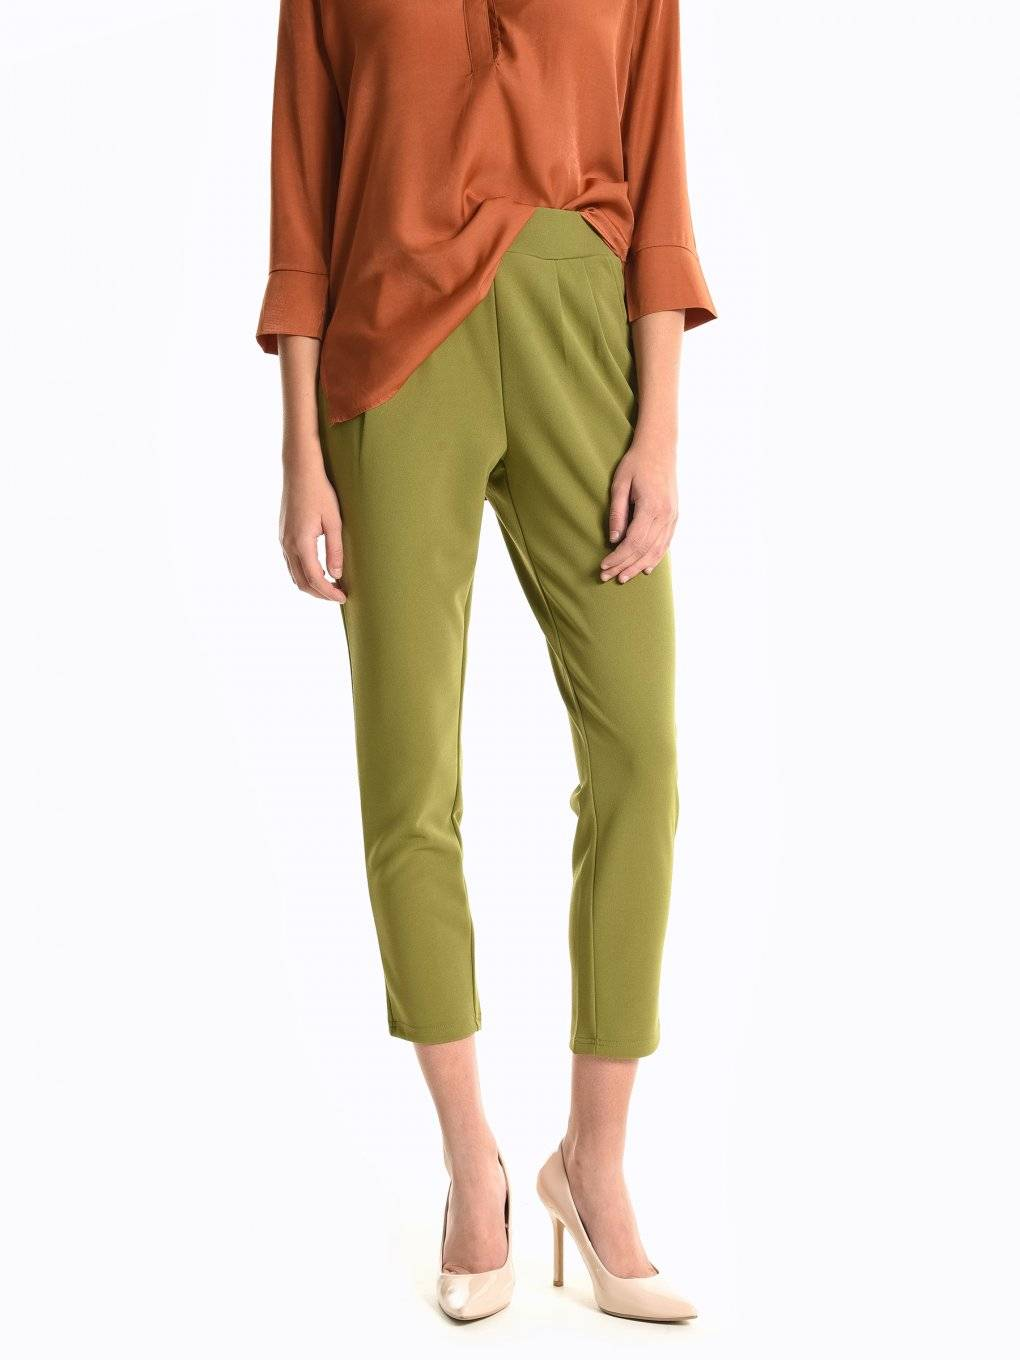 Carrot fit trousers